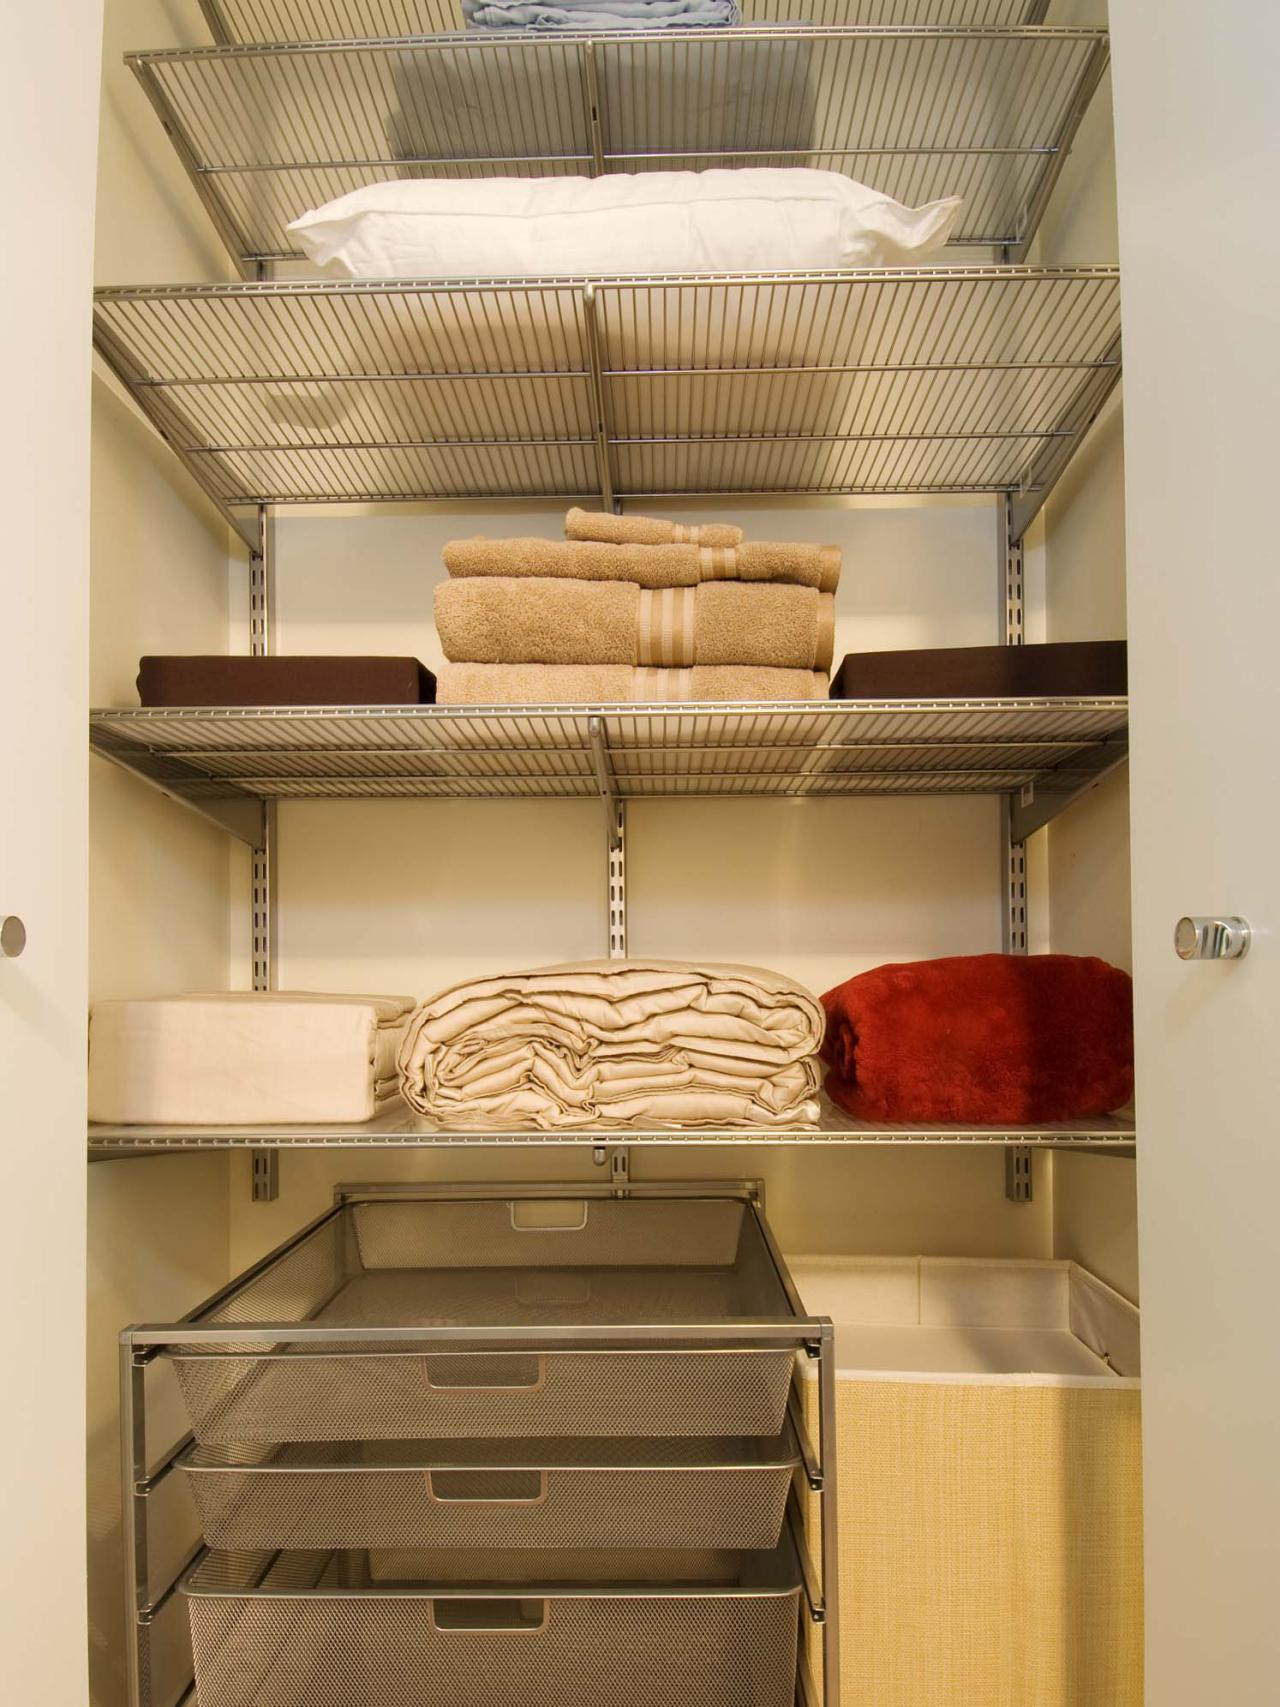 Related To: Closet Organization Closets Decluttering Organization. Organized  Linen Closet